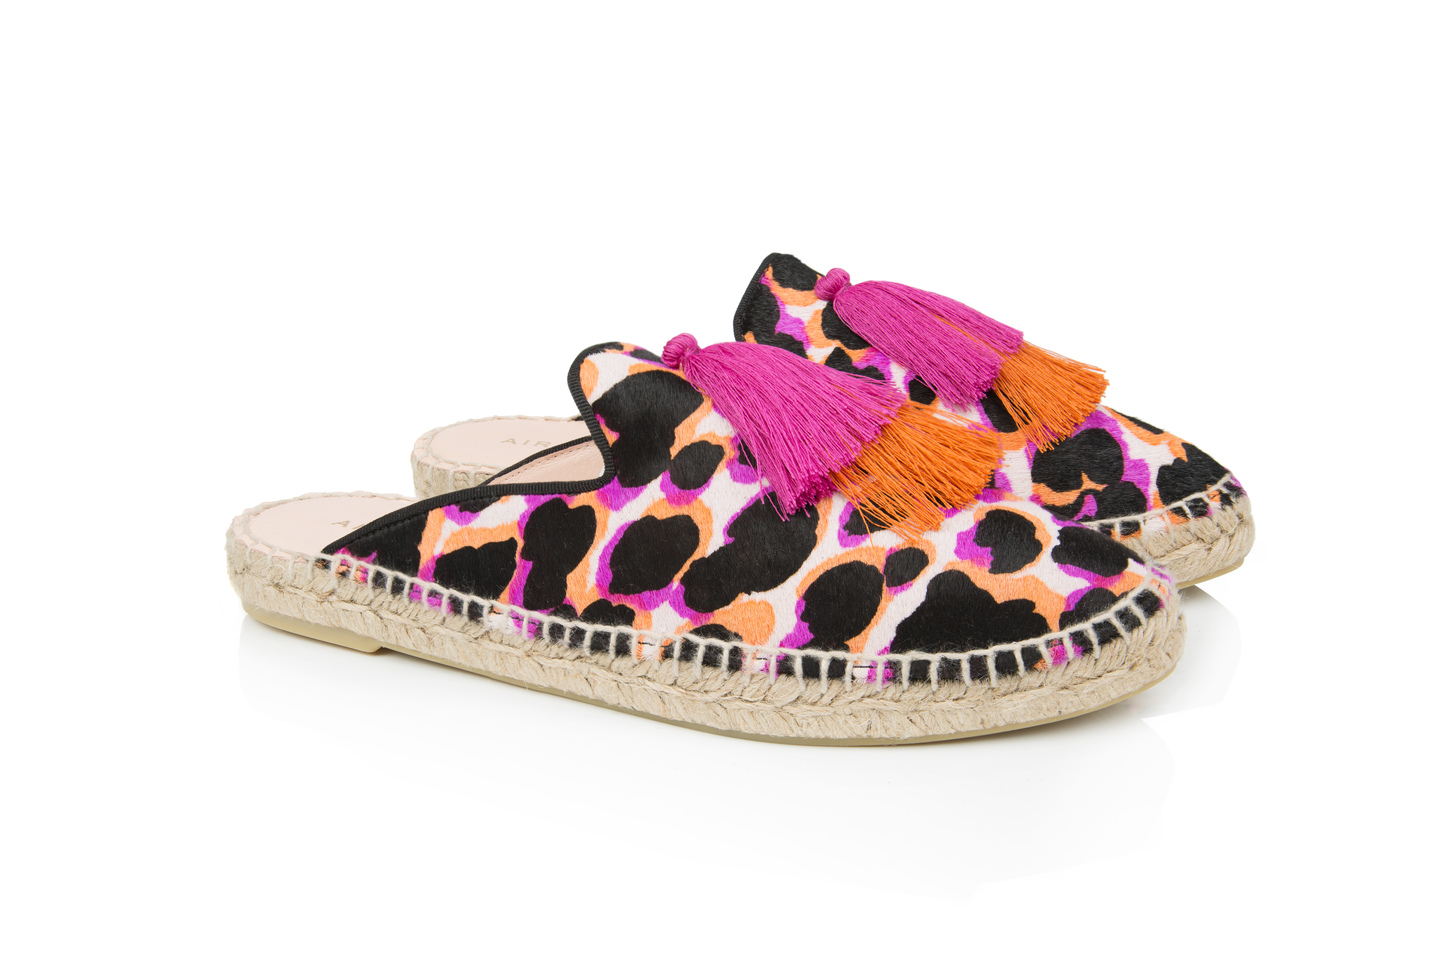 Souk Bright Leopard espadrilles | Air & Grace